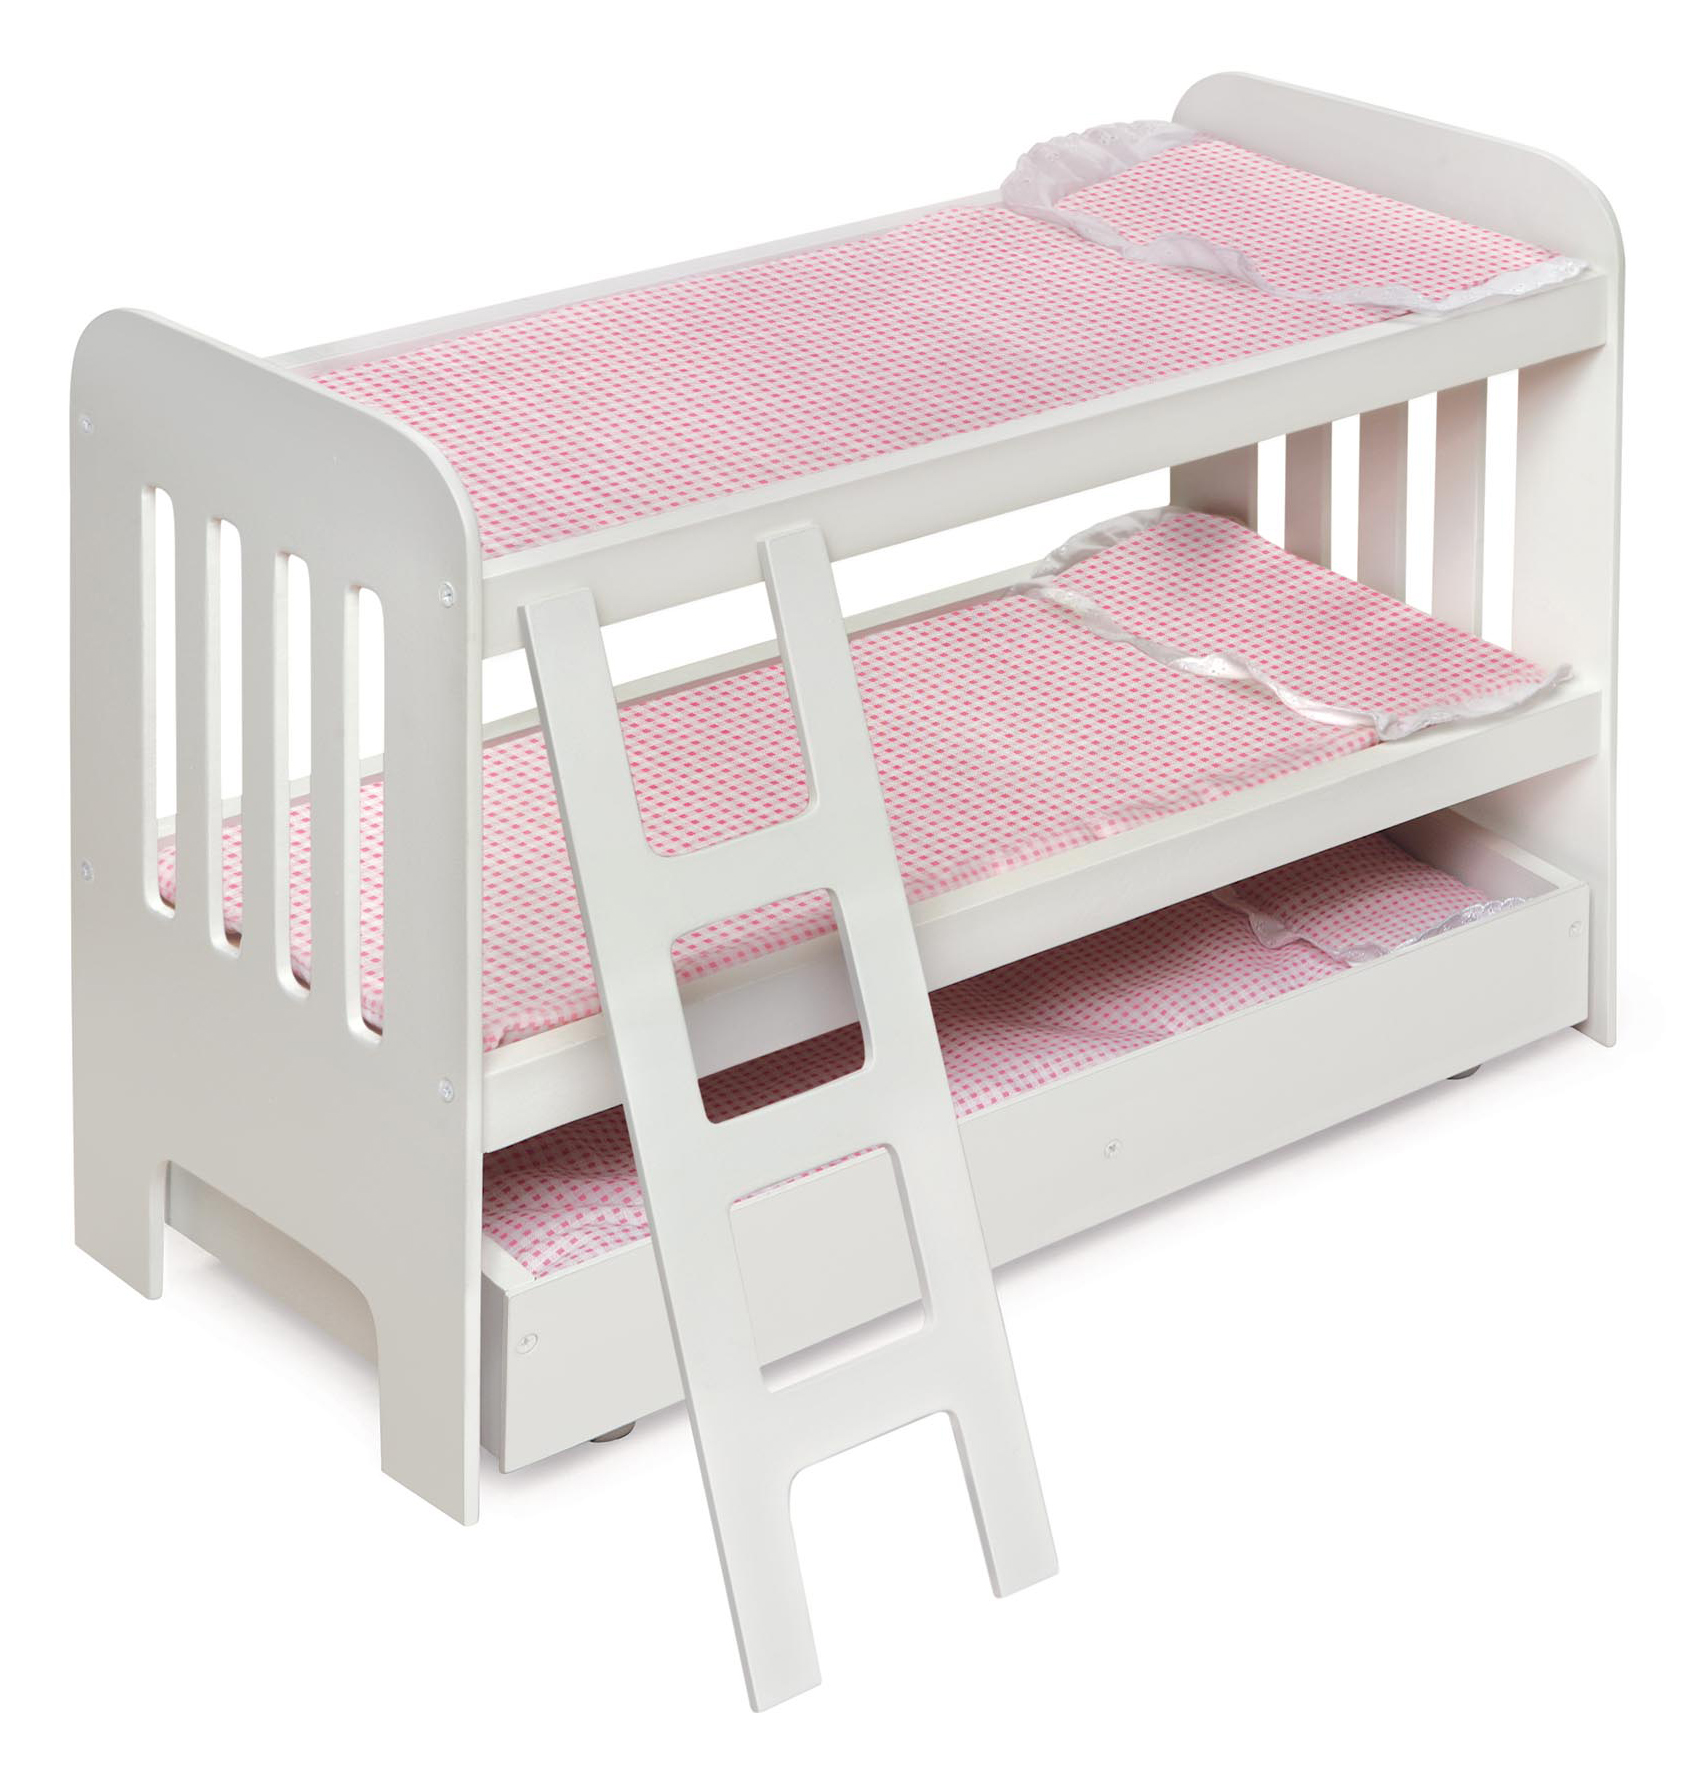 "Badger Basket Trundle Doll Bunk Bed with Ladder - White/Pink - Fits American Girl, My Life As & Most 18"" Dolls"